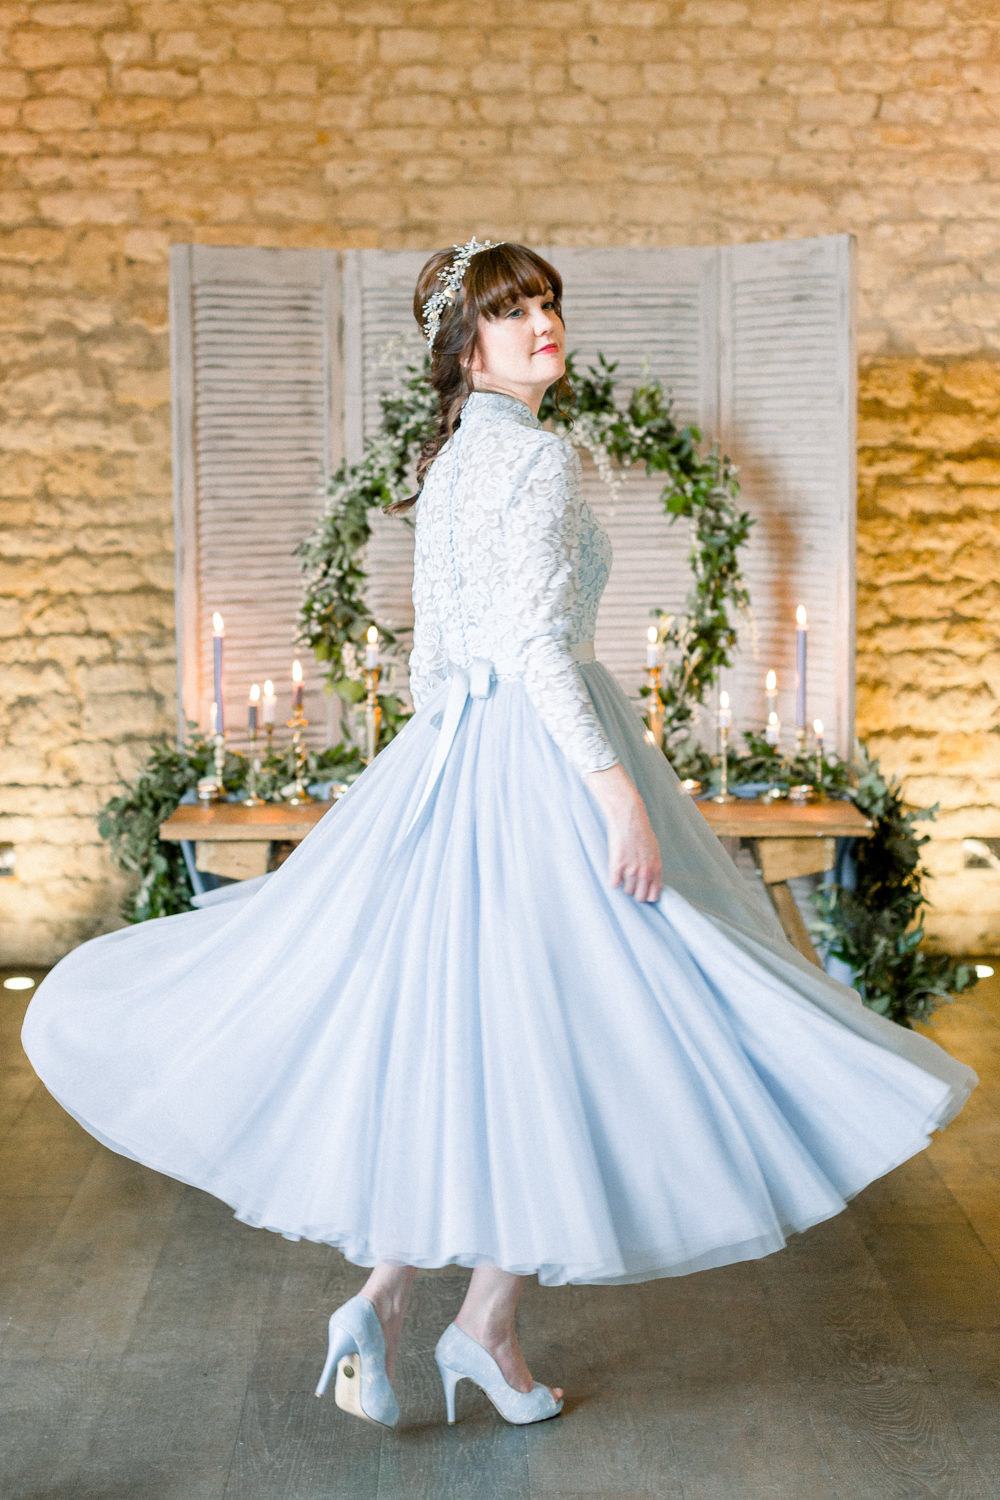 Dress Gown Bride Bridal Lace Sleeves Short Tea Length Winter Blue Barn Wedding Ideas Joanna Briggs Photography